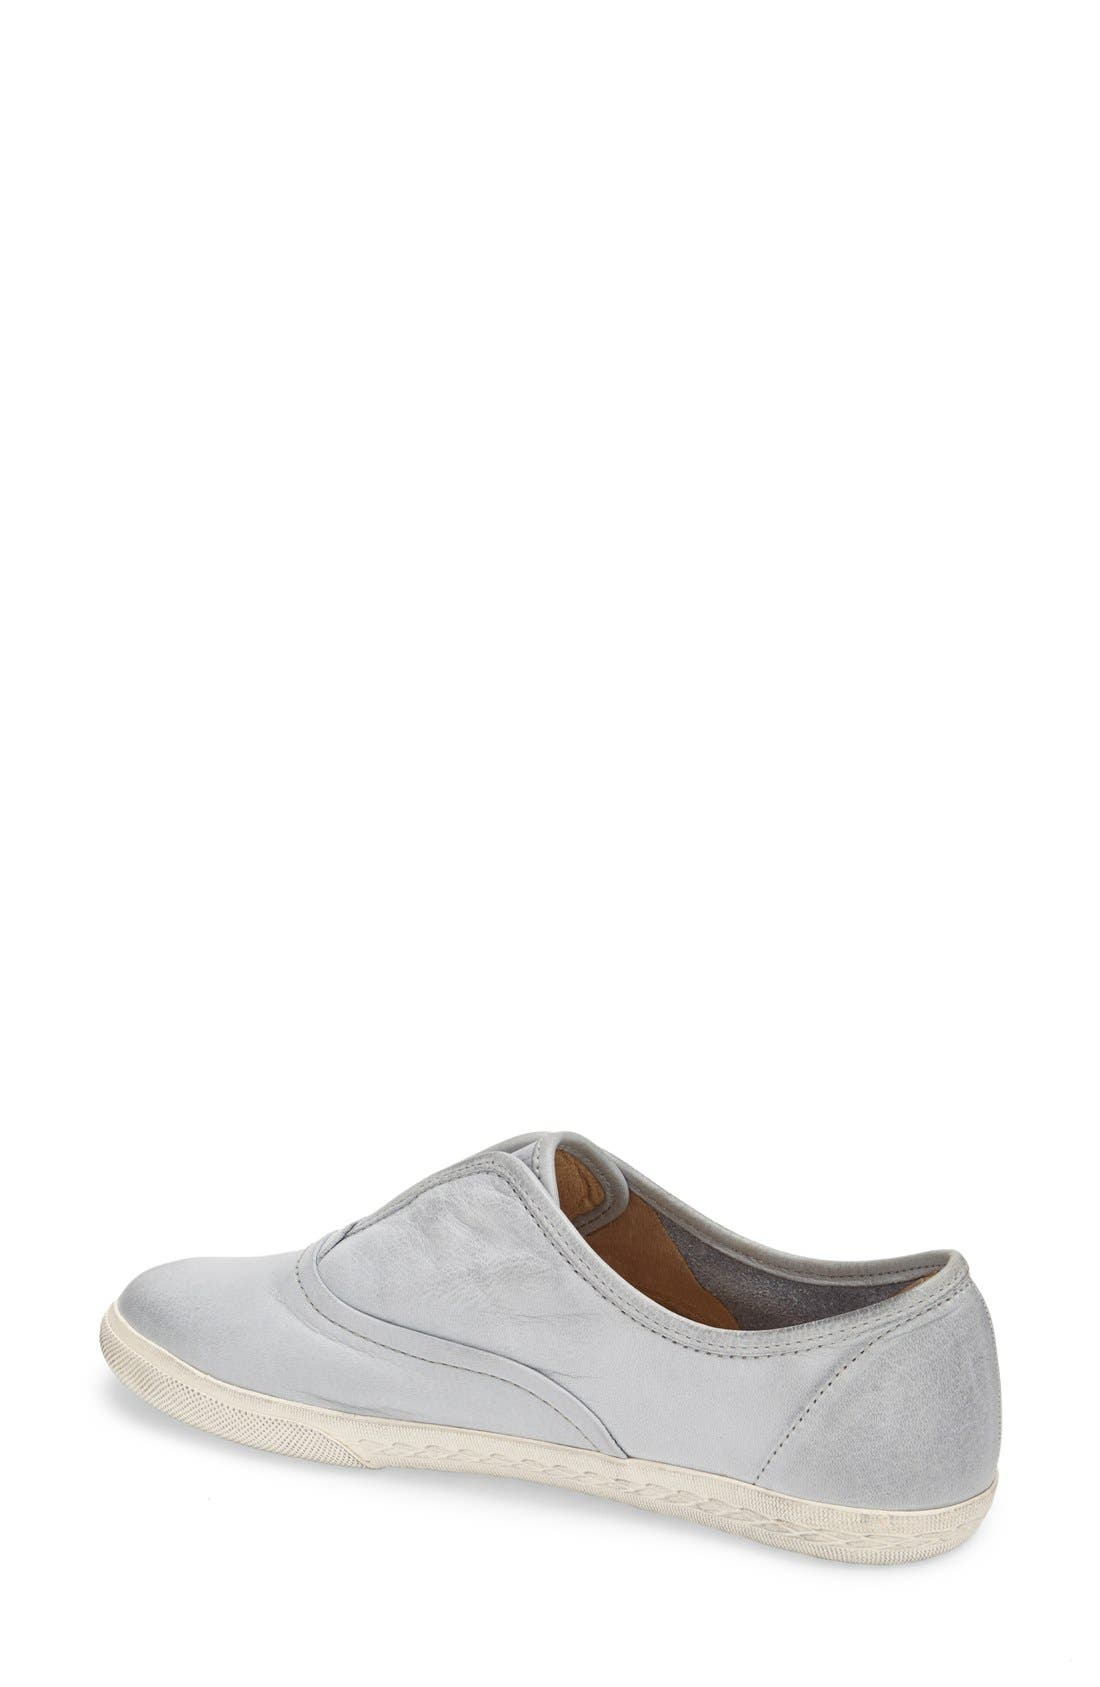 'Mindy' Slip-On Leather Sneaker,                             Alternate thumbnail 19, color,